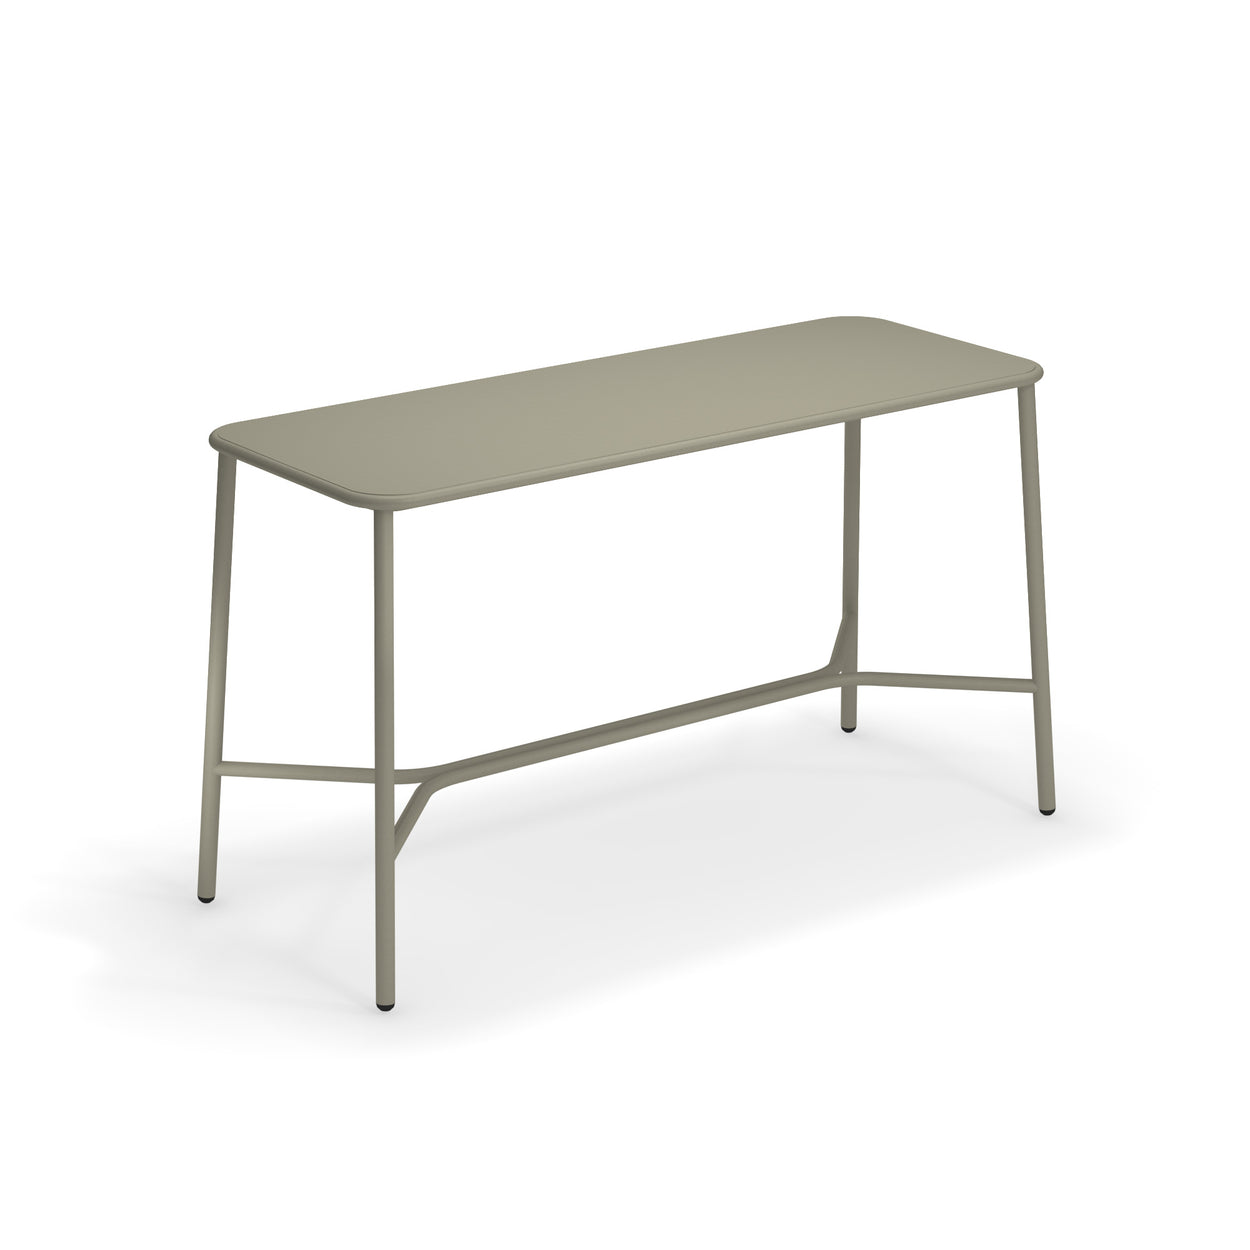 EMU Yard 6 Seater Counter Table